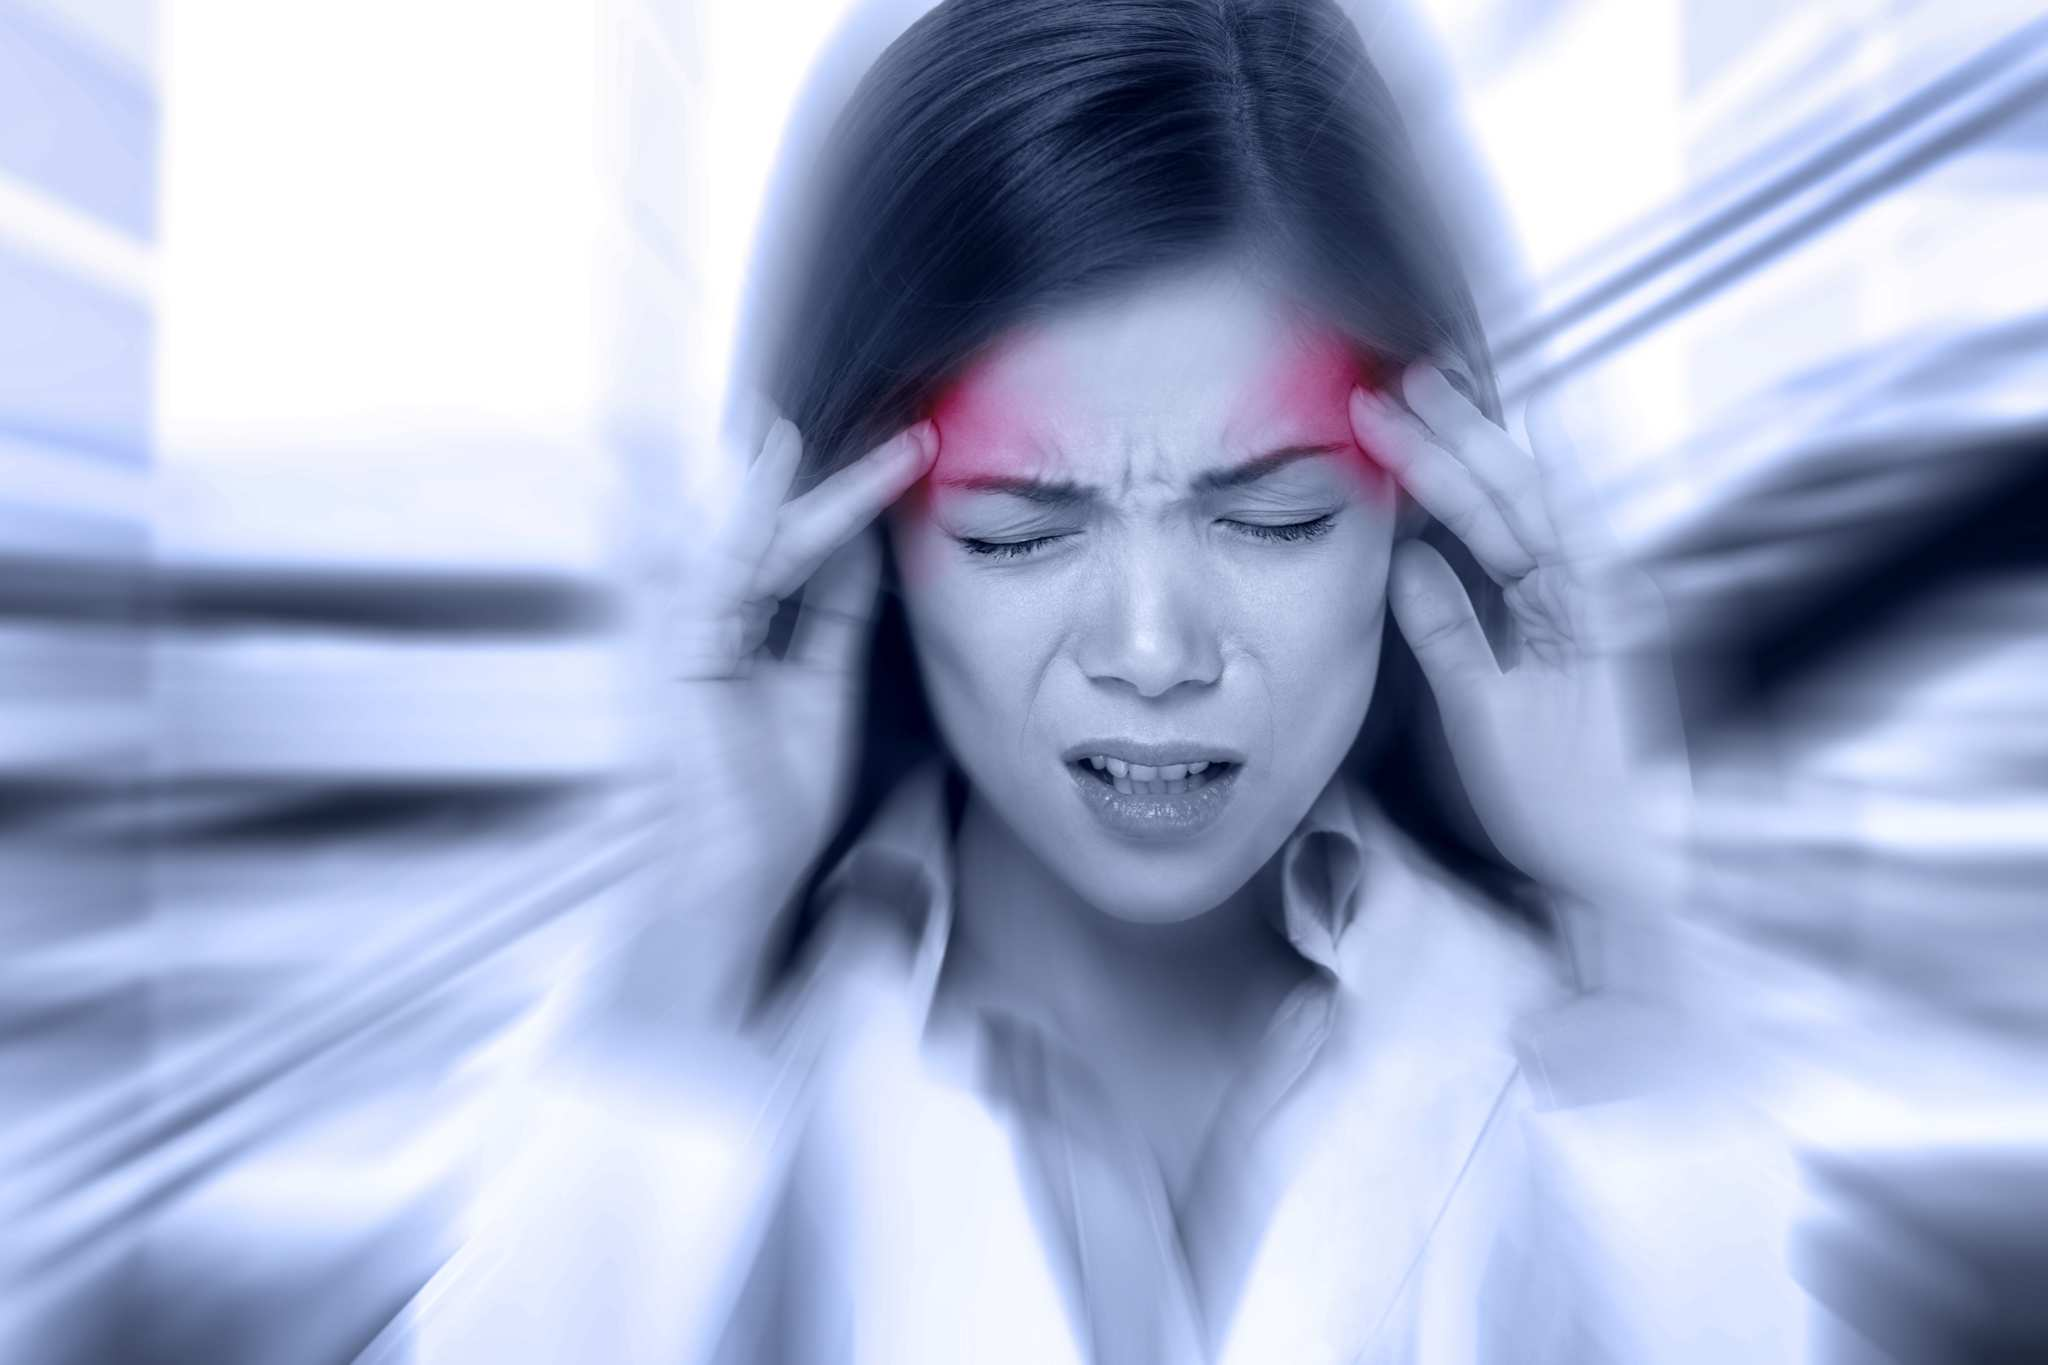 A woman clutches her head in pain, as if suffering from a migraine. Migraine sufferers have been shown to have lower levels of anandamide, a naturally occurring chemical found in all people that's similar to those found in cannabis and hemp.